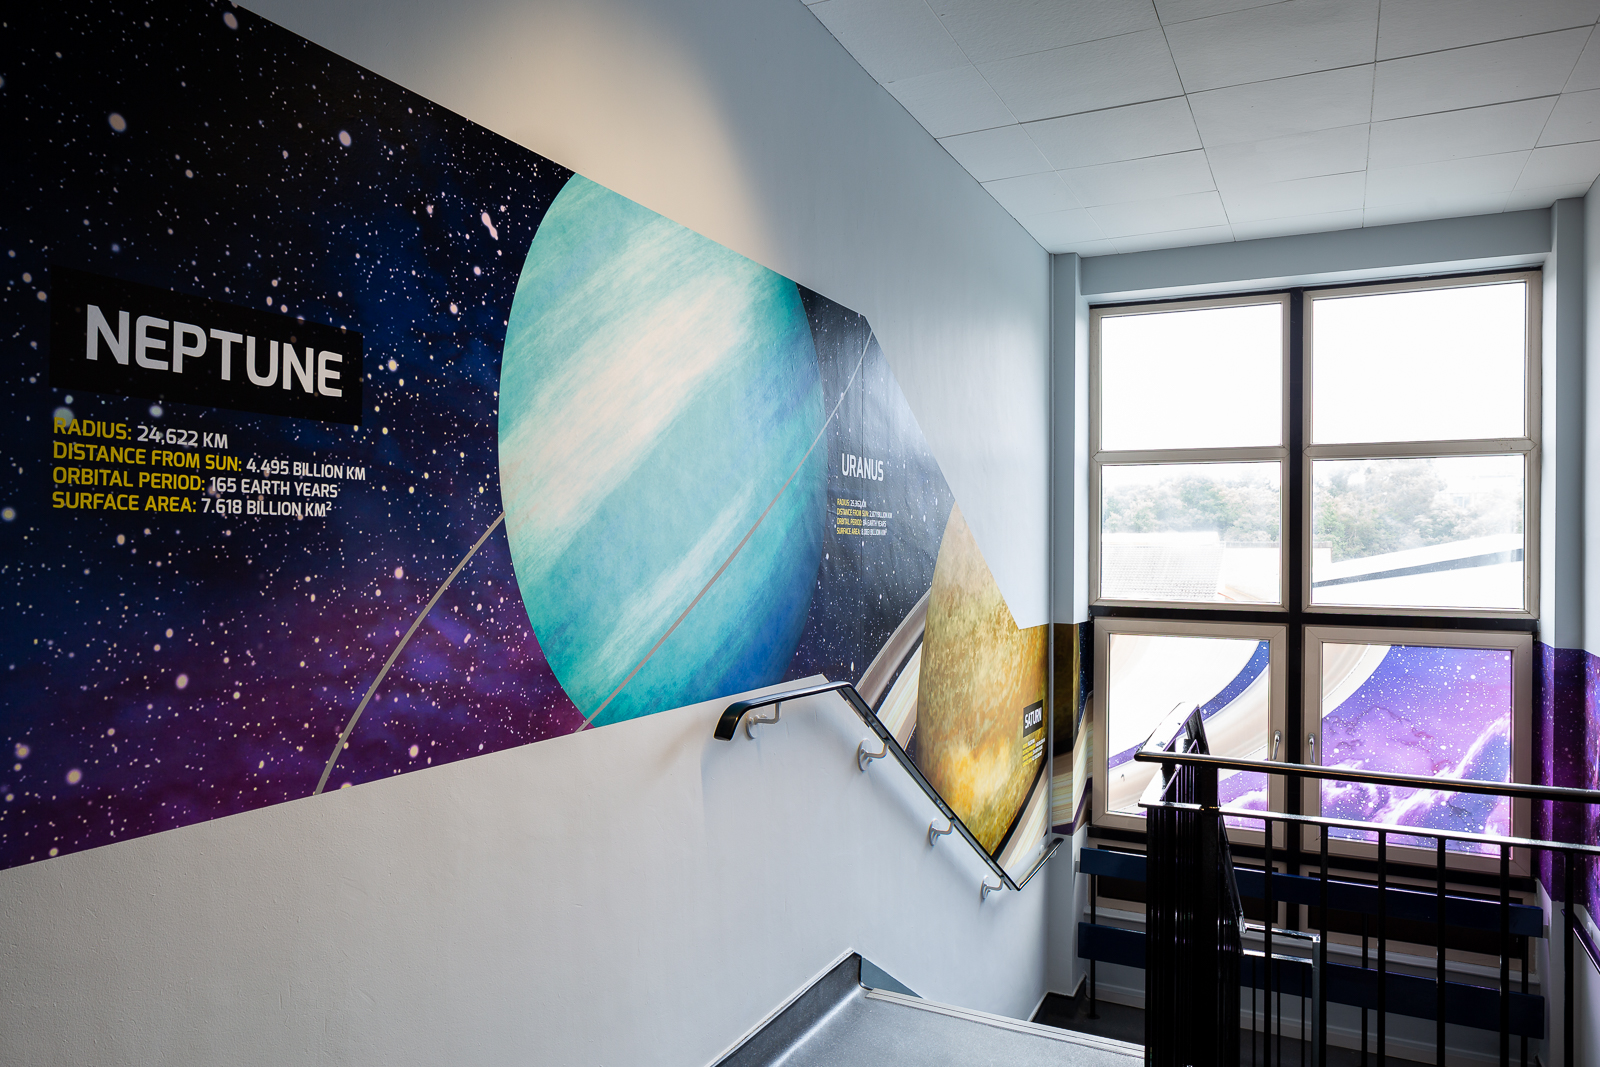 image from completed school stairway wall art installation